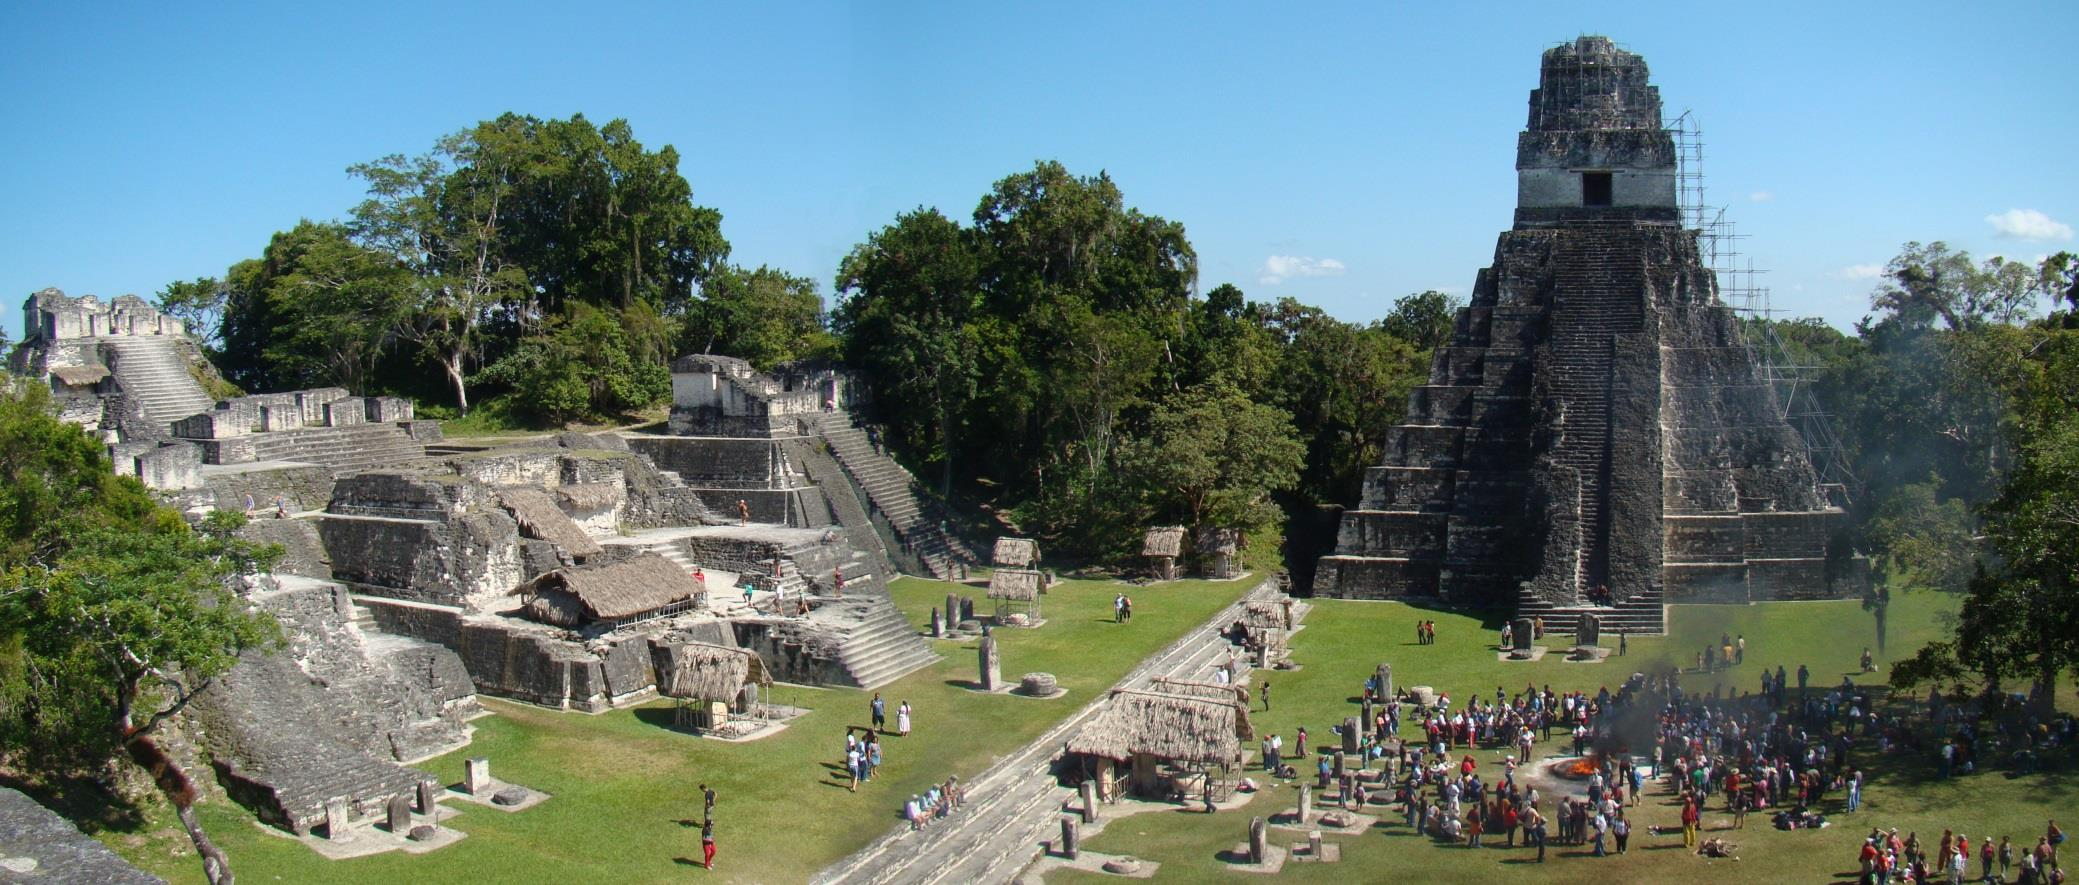 Plaza Tikal - http://upload.wikimedia.